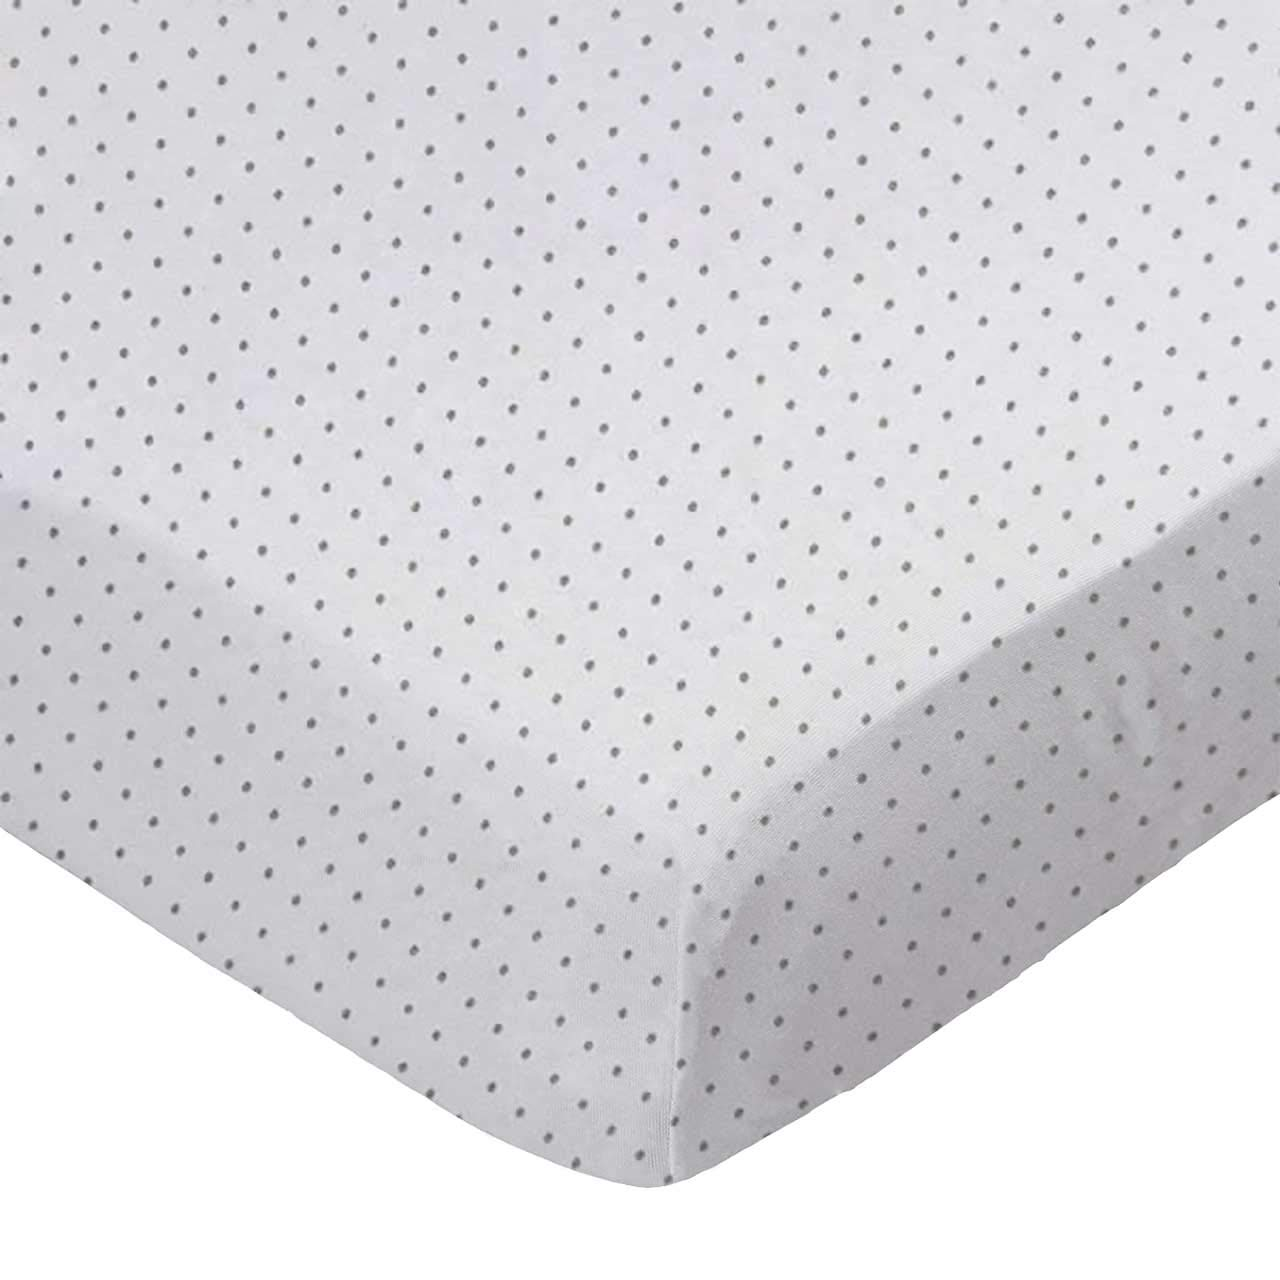 SheetWorld Fitted Cradle Sheet 18 x 36 White Swiss Dot Jersey Knit Made in USA